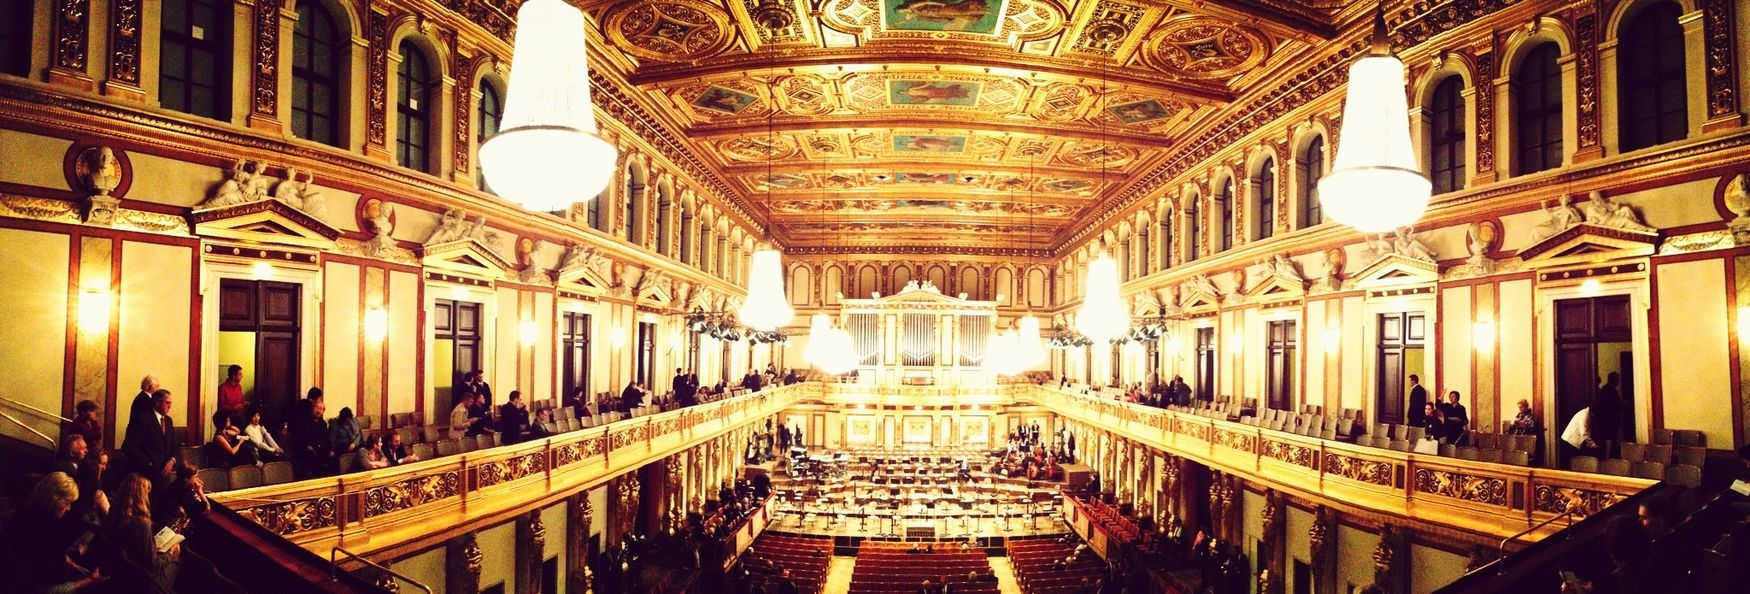 Concert Concert Hall  Classical Music Panorama